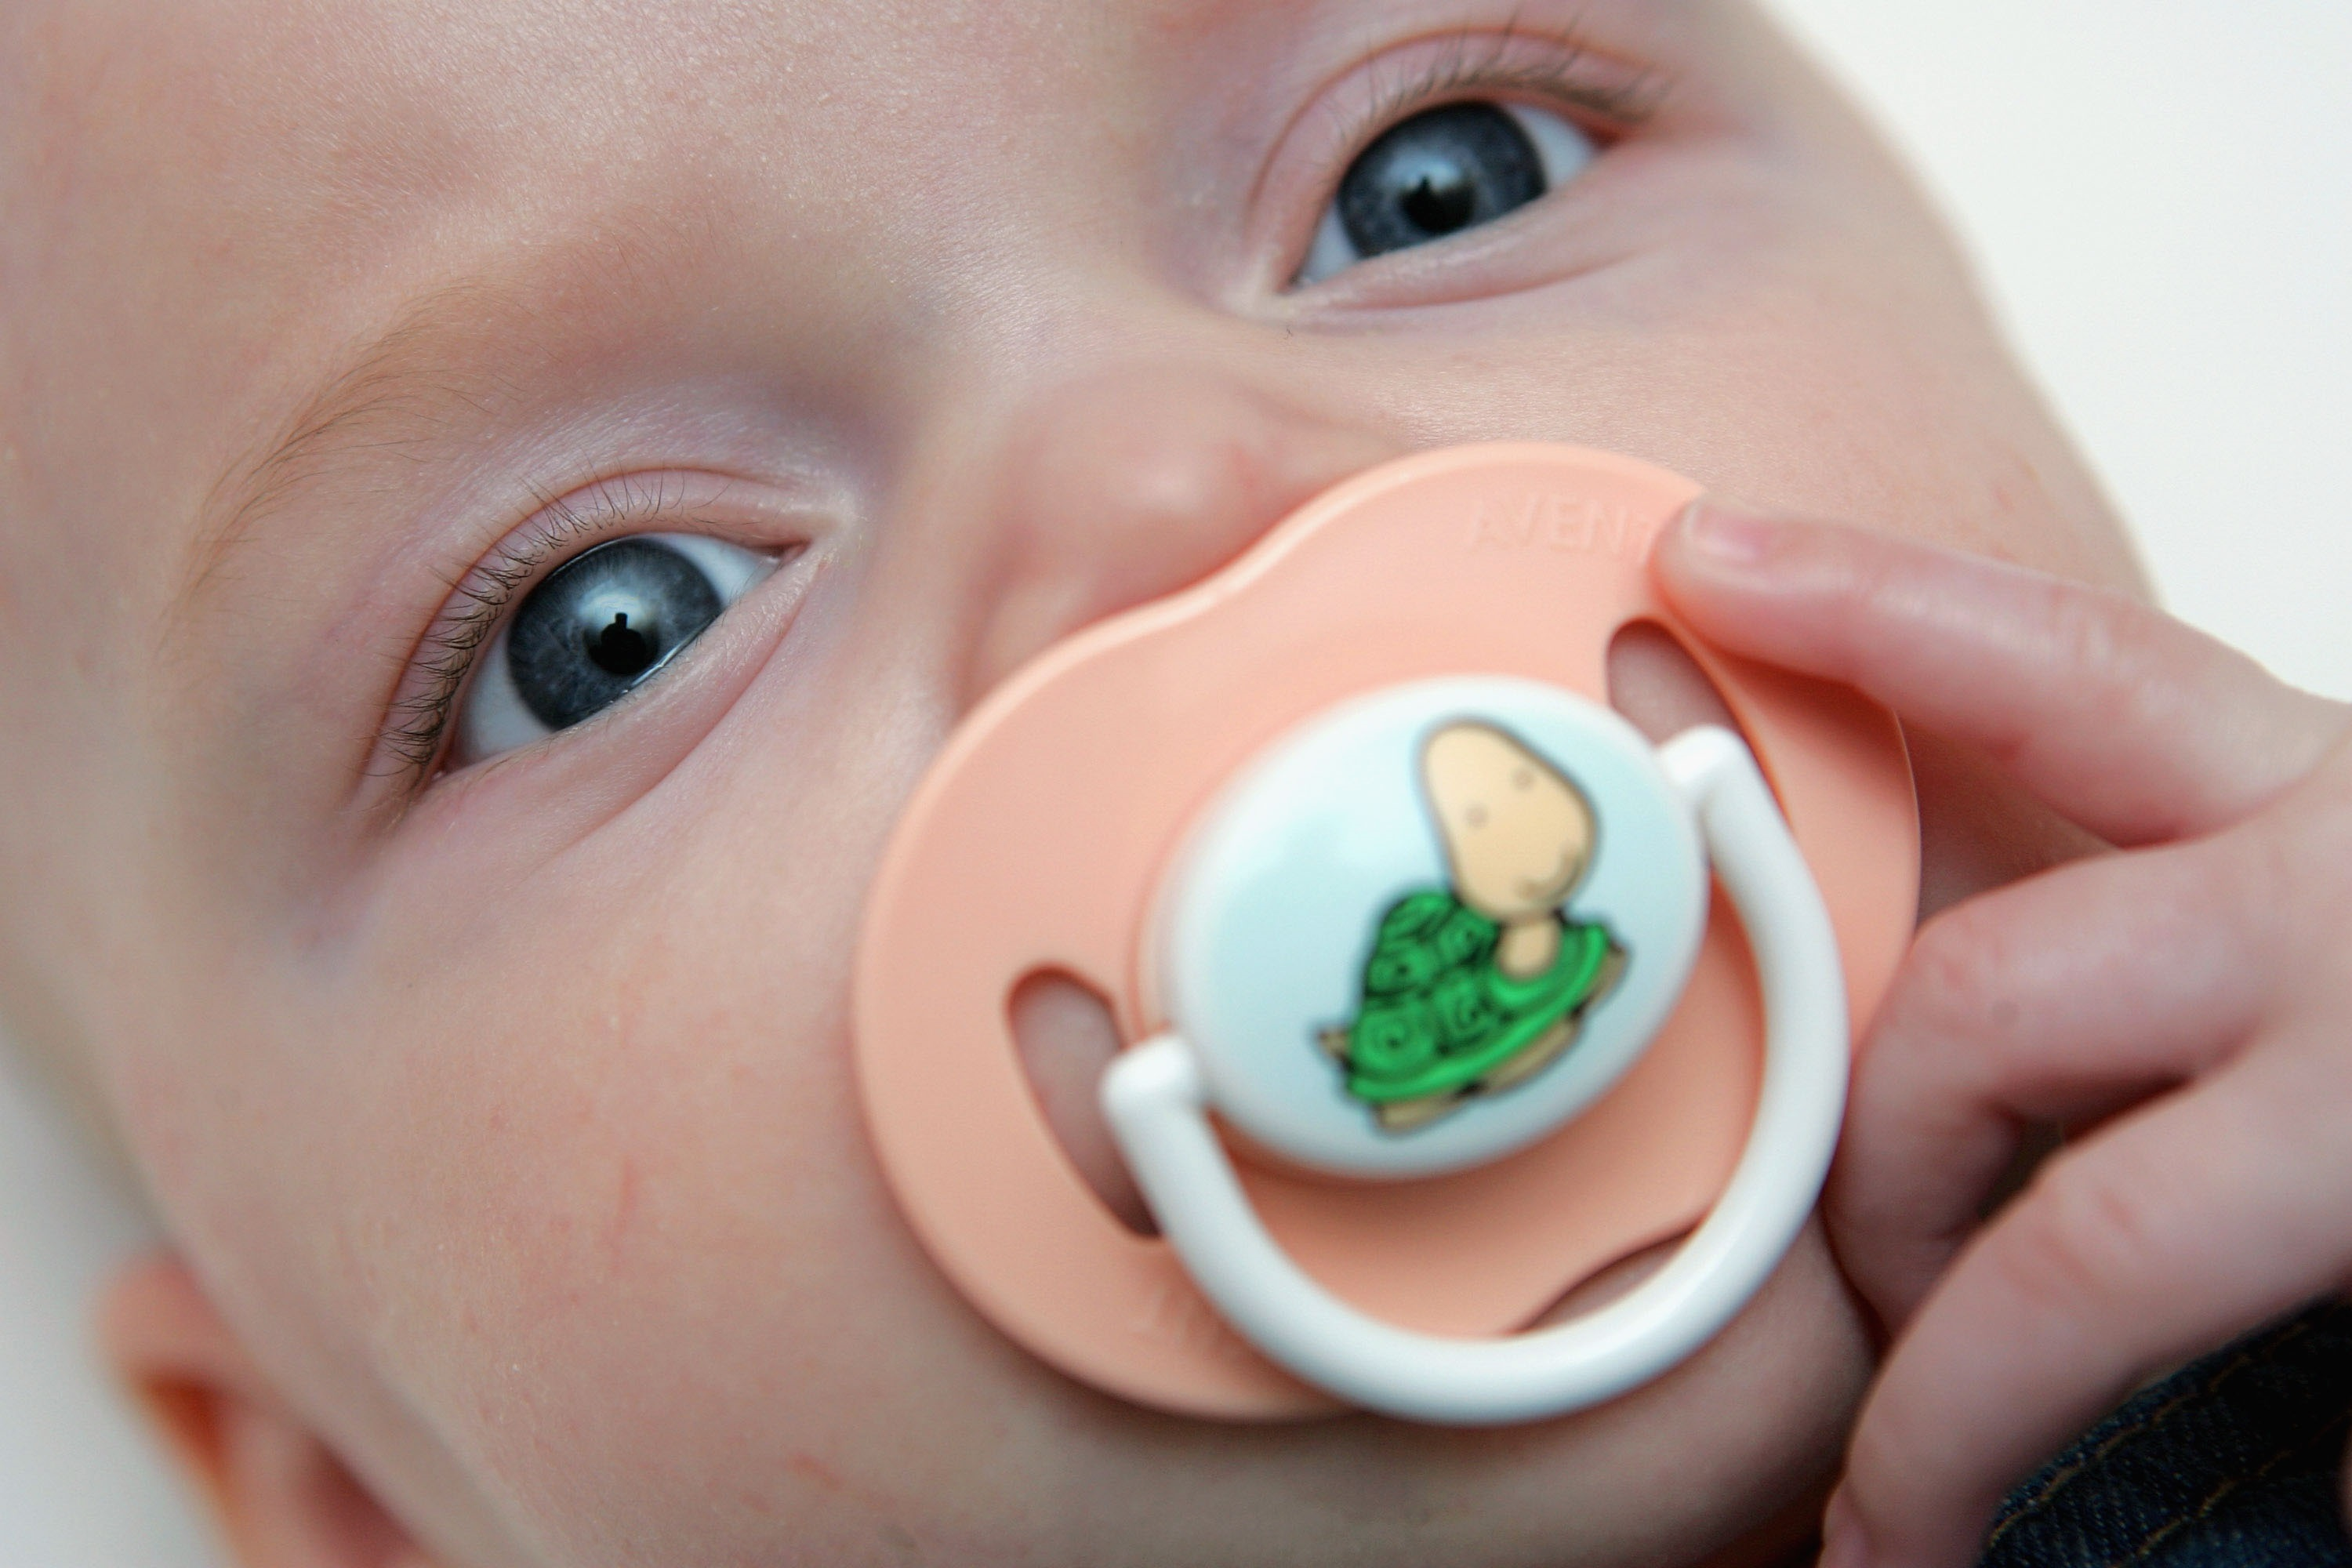 Missing pacifiers discovered in dog's stomach - 102.3 KRMG